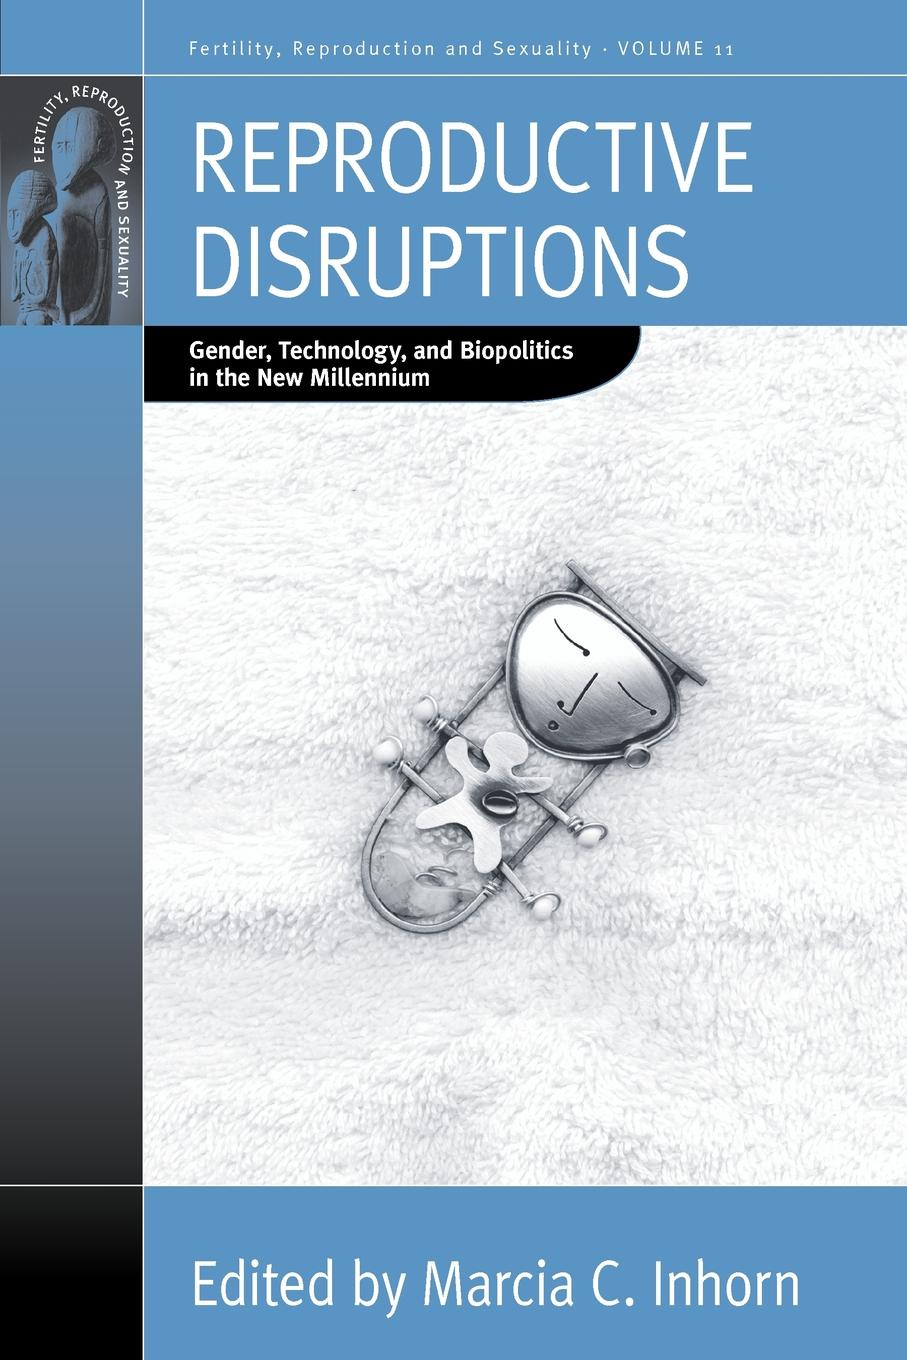 Reproductive Disruptions. Gender, Technology, and Biopolitics in the New Millennium reproductive agency medicine and the state cultural transformations in childbearing